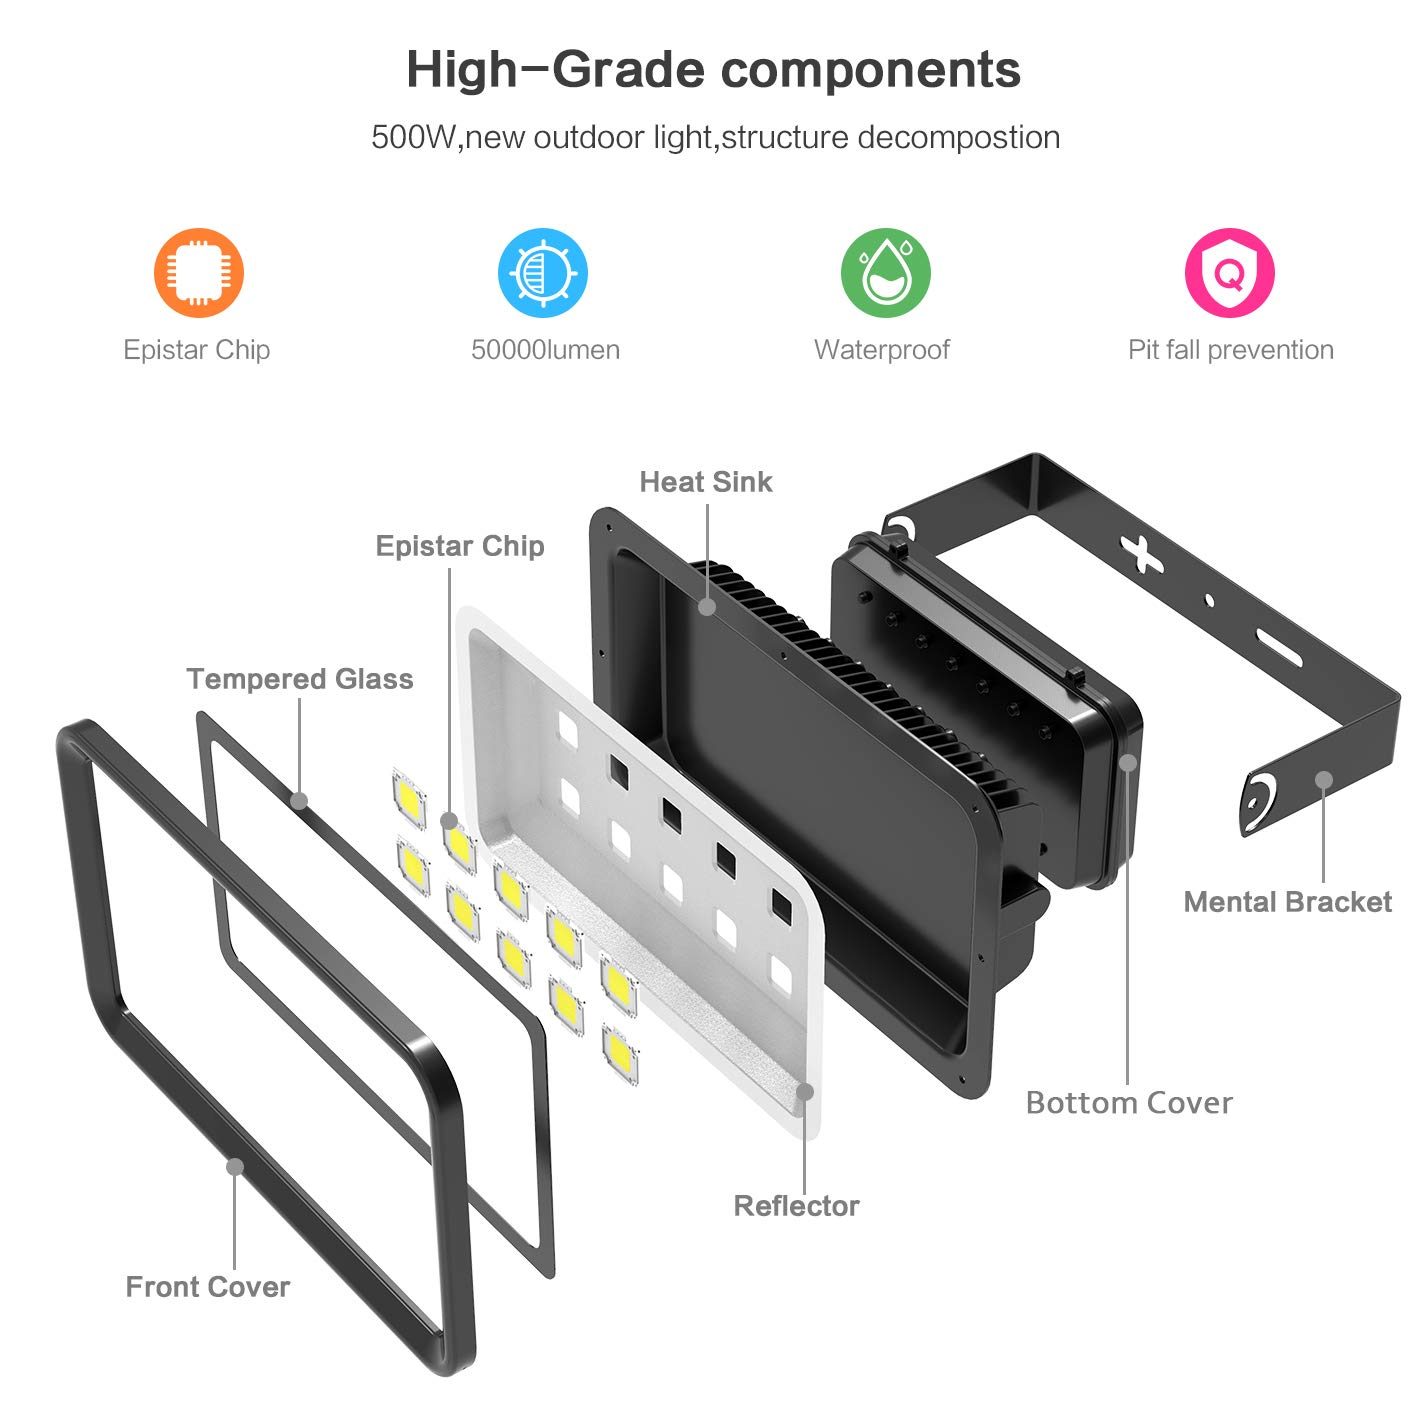 Stadium and Square Dimgogo LED Flood Light 600W Outdoor Waterproof IP65 60000lm Super Bright Flood Lamp Cool White 6000K Spotlight Lamp Daylight for Garden Yard Playground Party